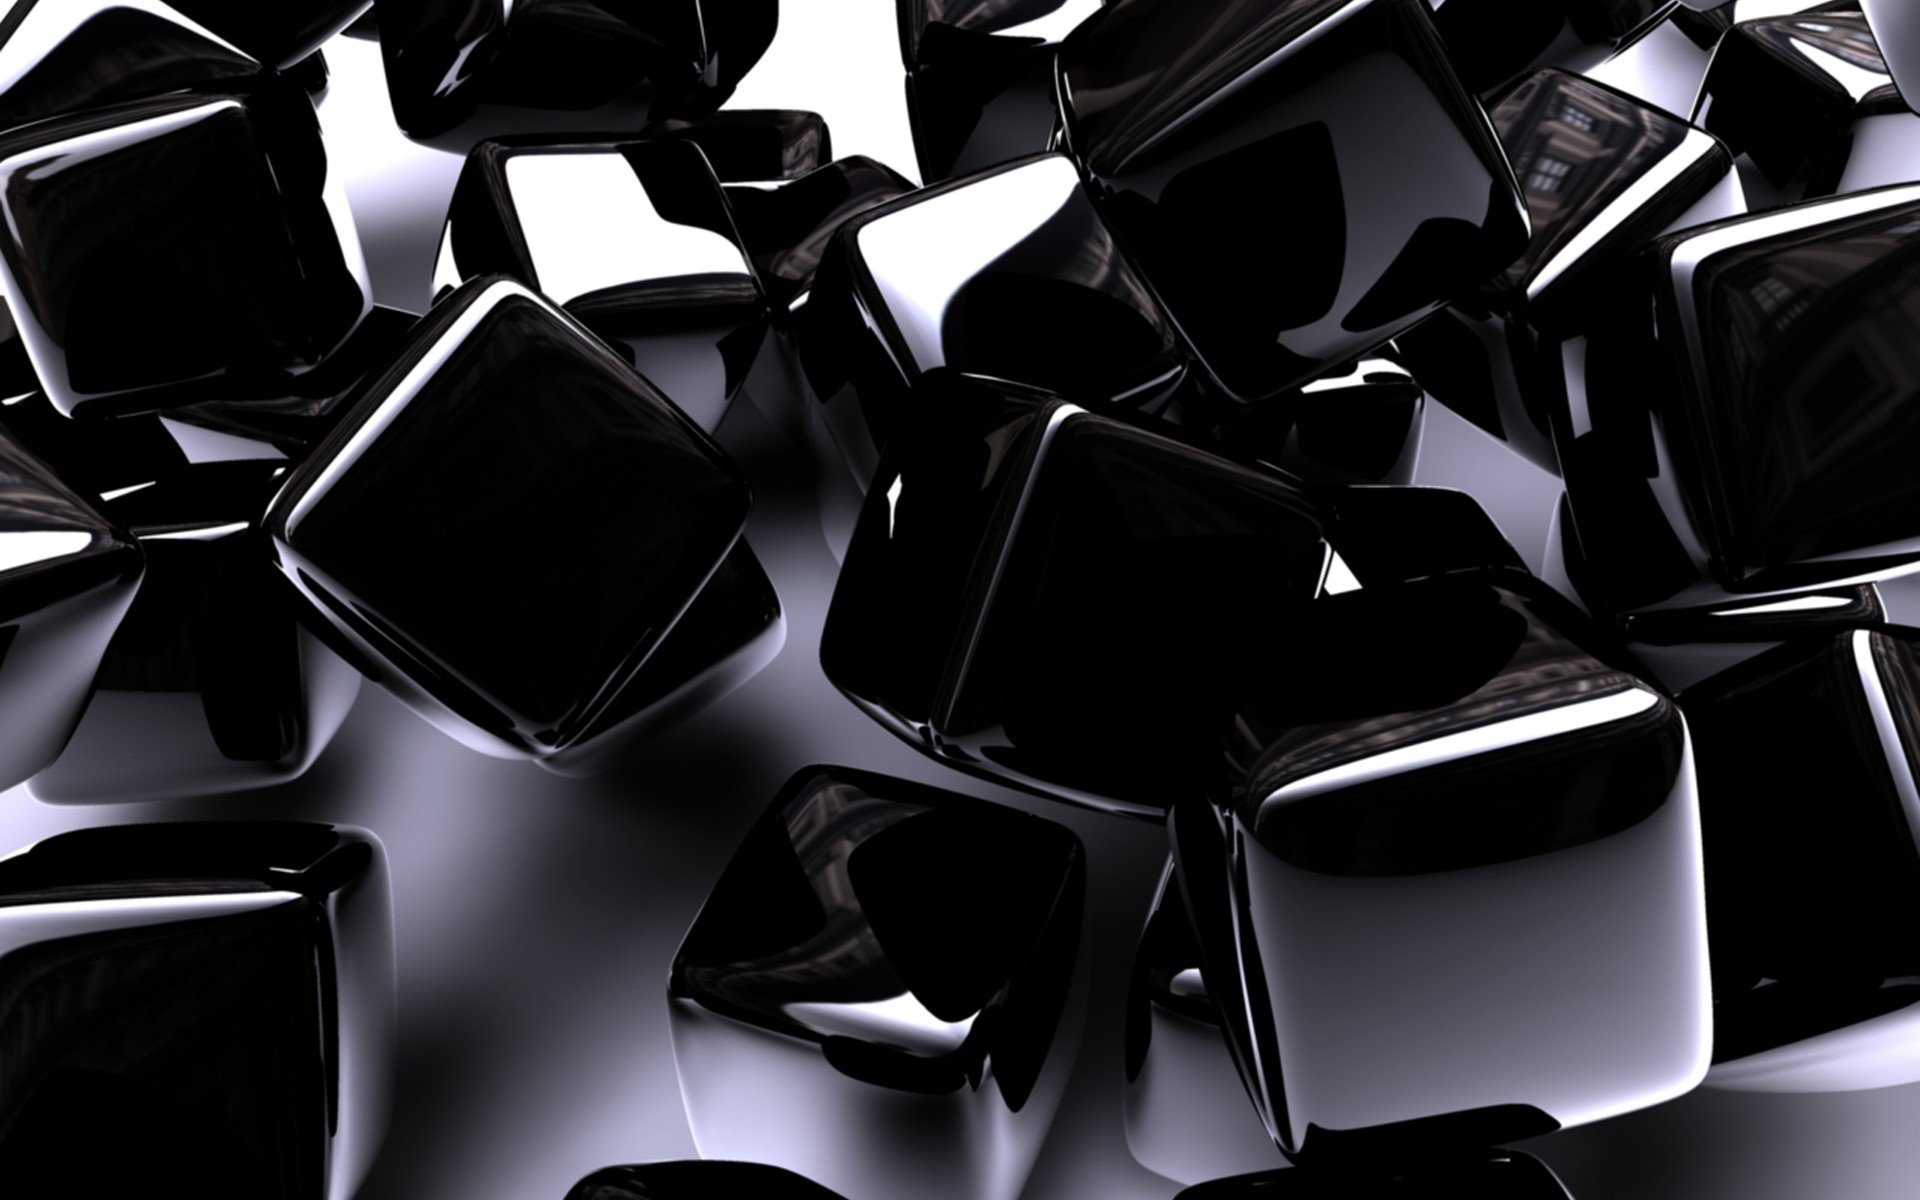 CGI - Cube  Abstract Digital CGI 3D Wallpaper